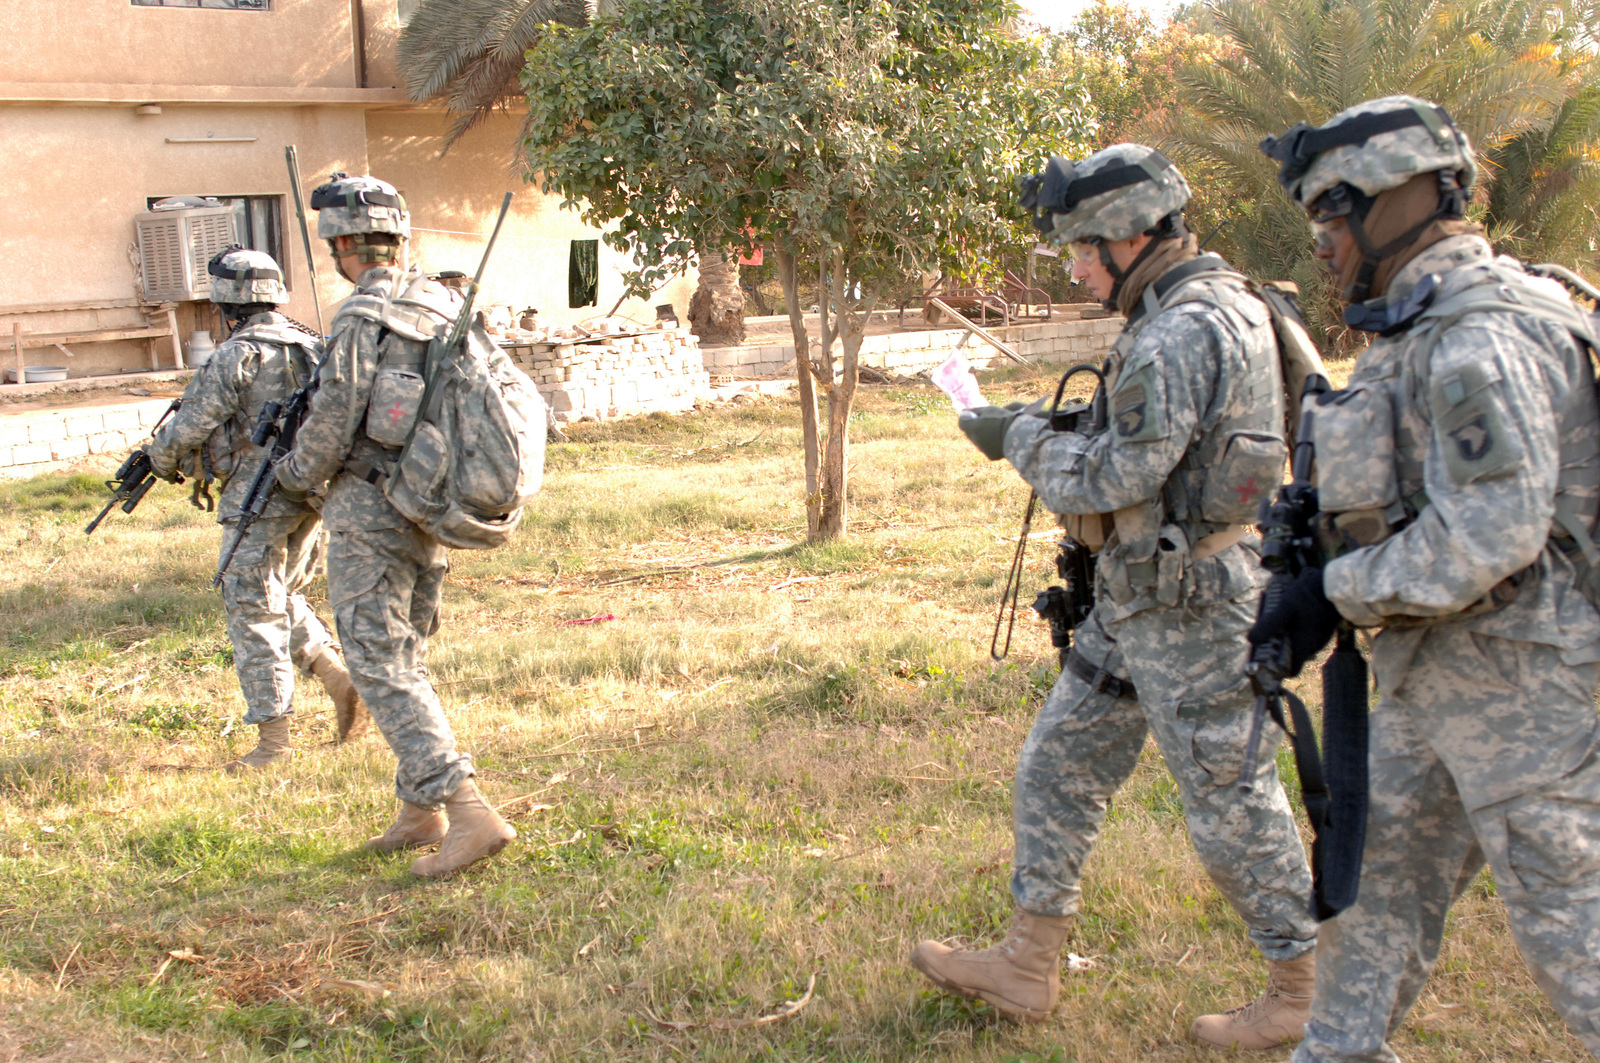 On Dec. 30, 2005 soldiers from Bravo Company, 2nd Bn, 502nd INF conducted Search and Sweep Operations in the Village of Shakaria, Iraq. CAPT. Andre Rivier, B Company Commander walked from house to house talking to locales.(U.S. Army photo by STAFF SGT. Kevin L. Moses Sr) (Released)